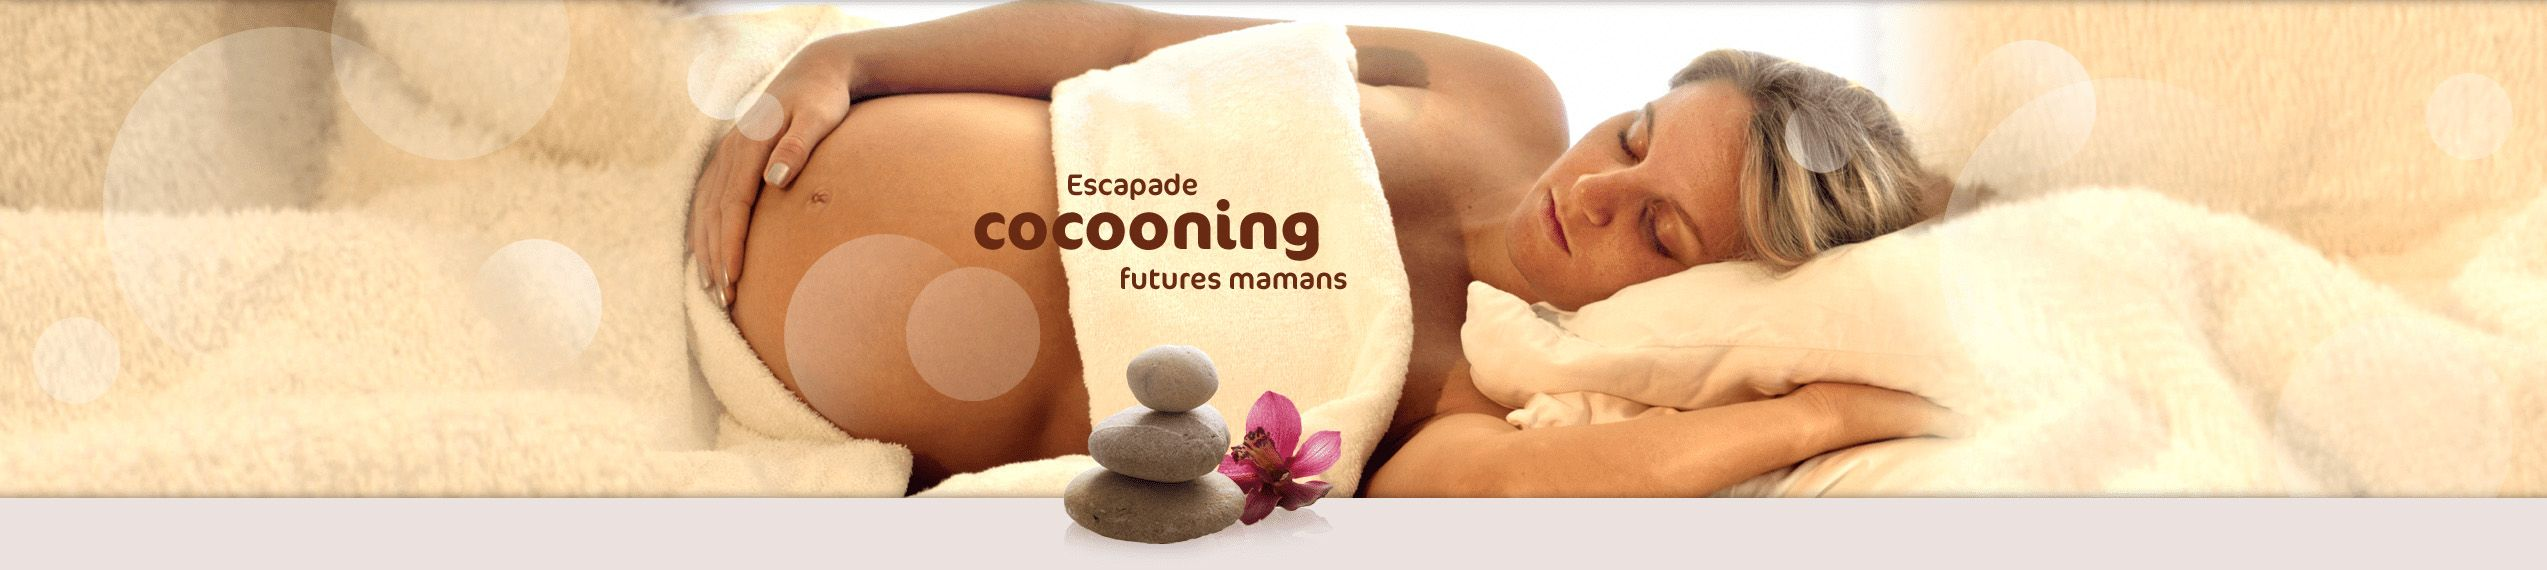 Cocooning mamans